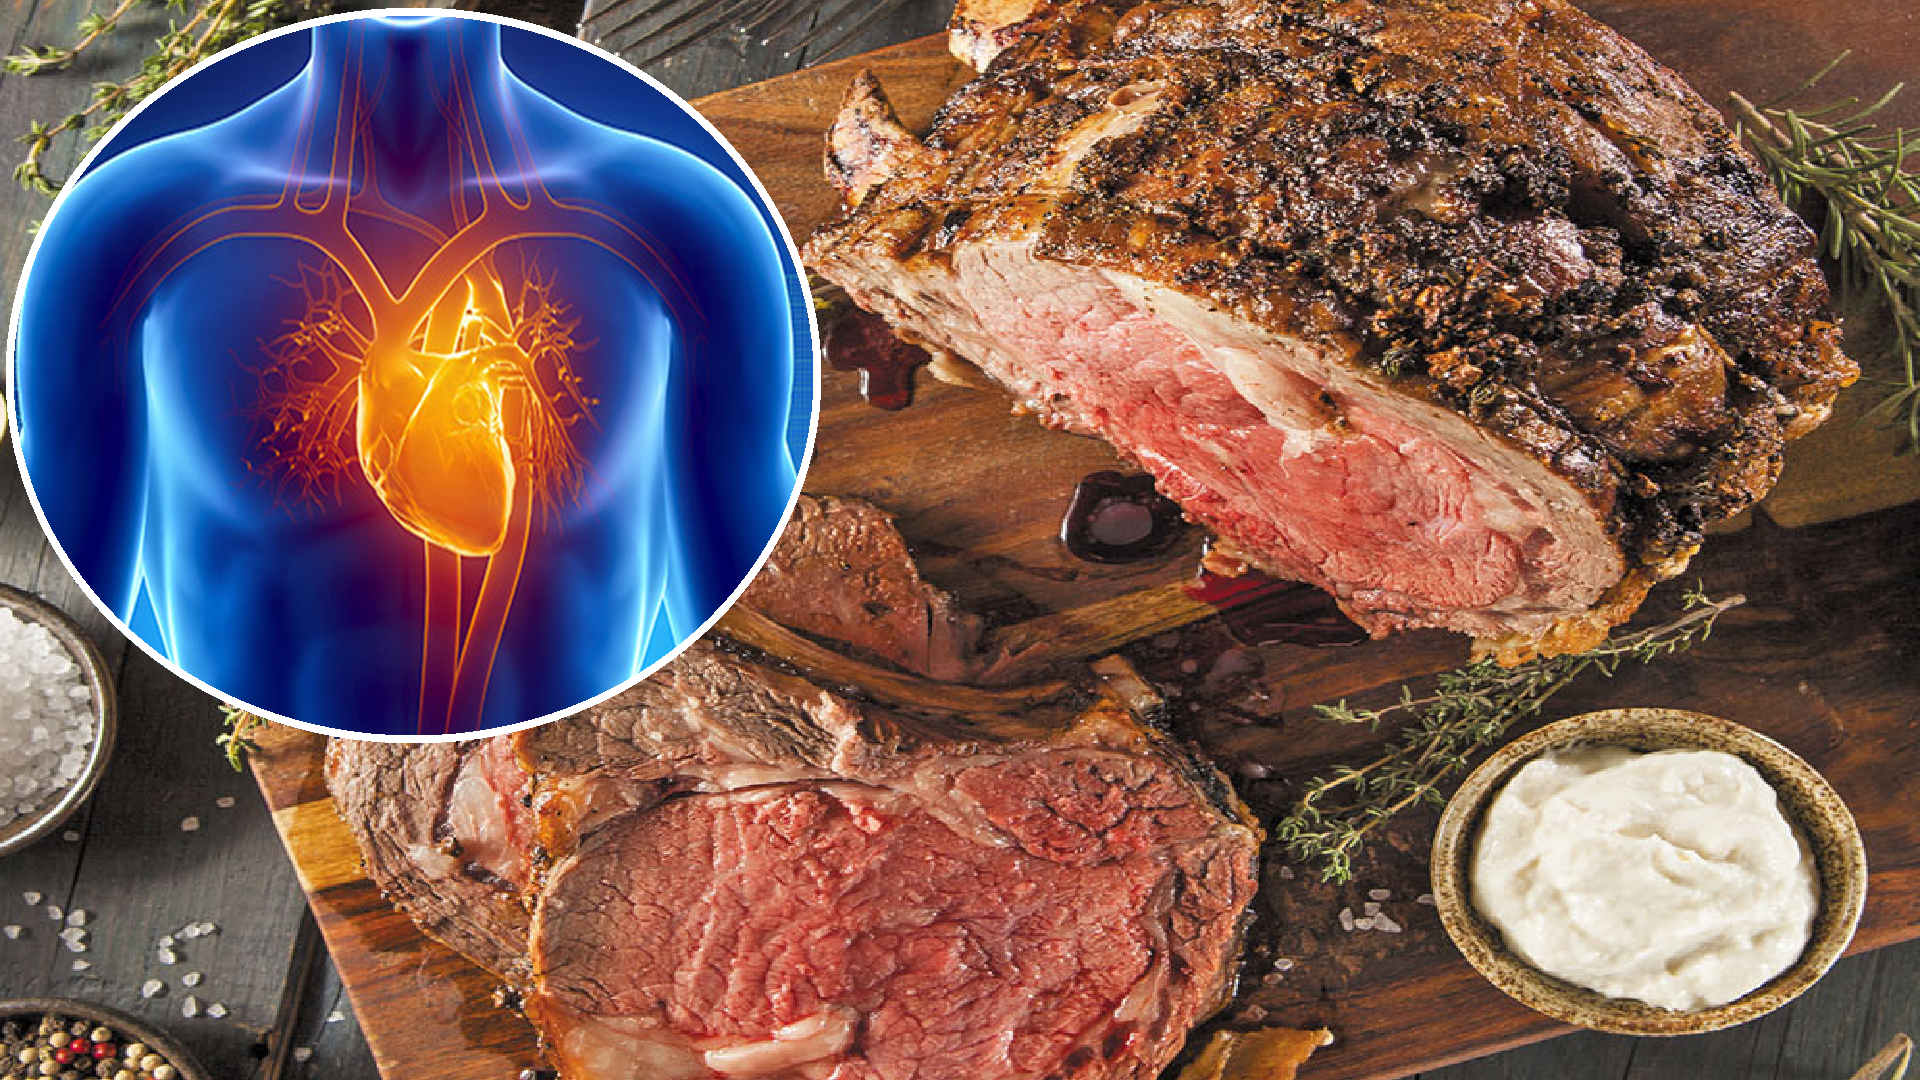 Daily Consumption of Red Meat Triples Heart Disease